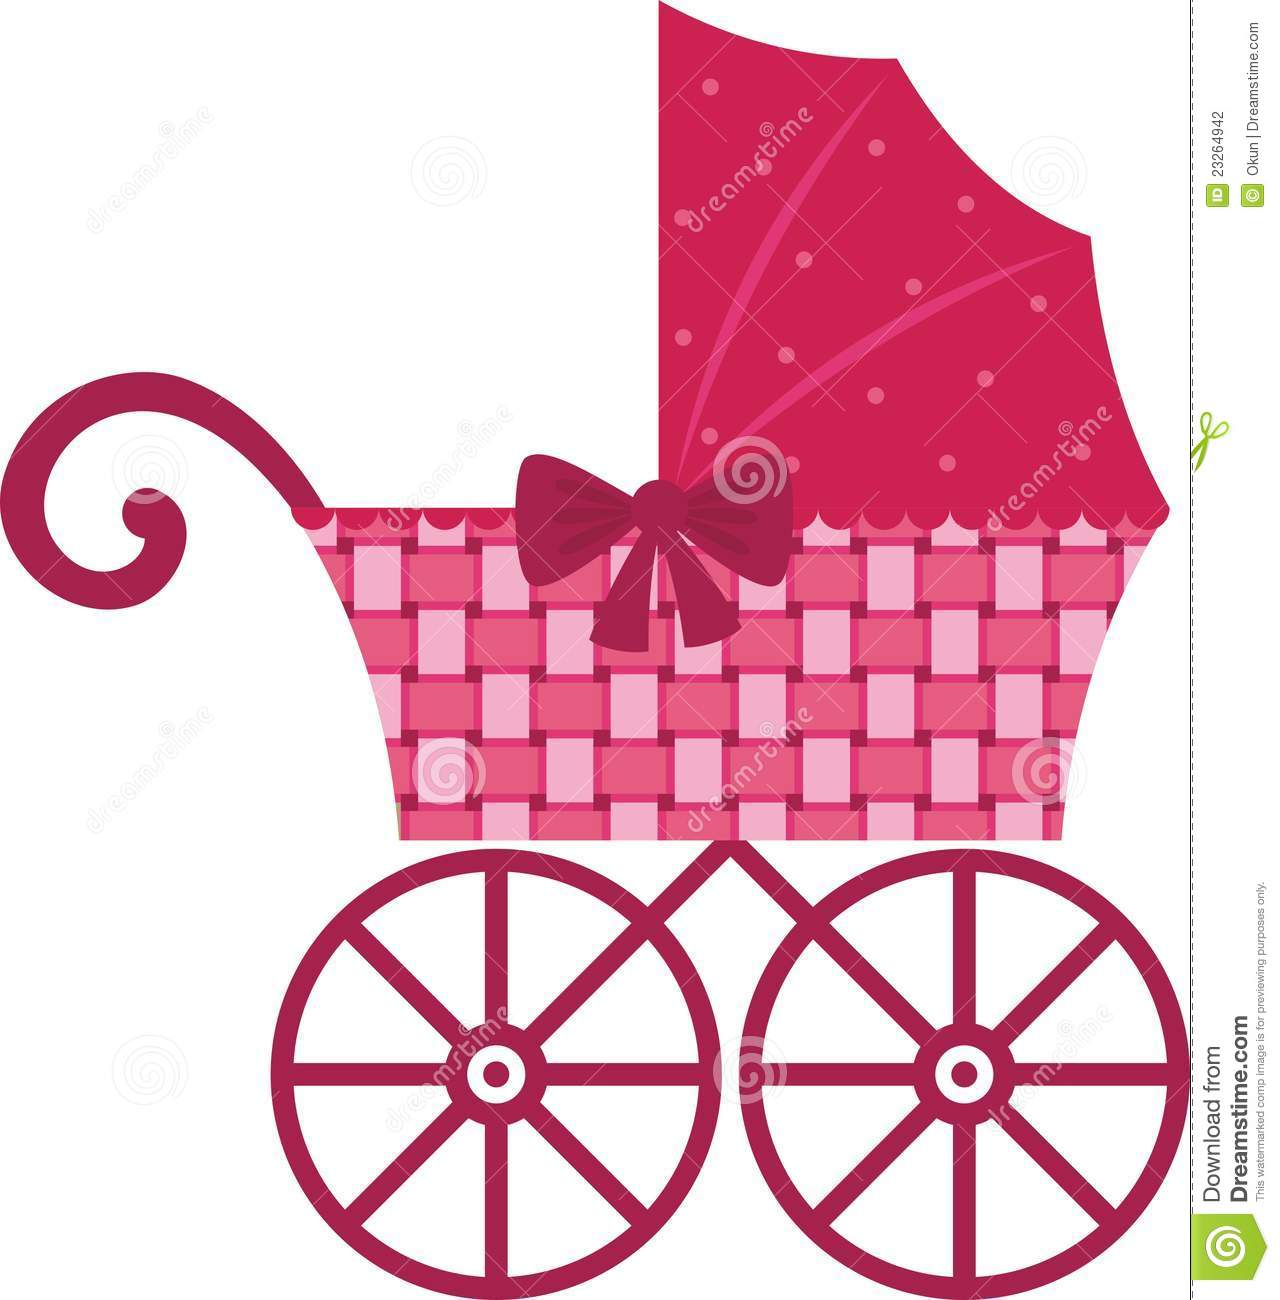 Carriage 20clipart | Clipart Panda - Free Clipart Images